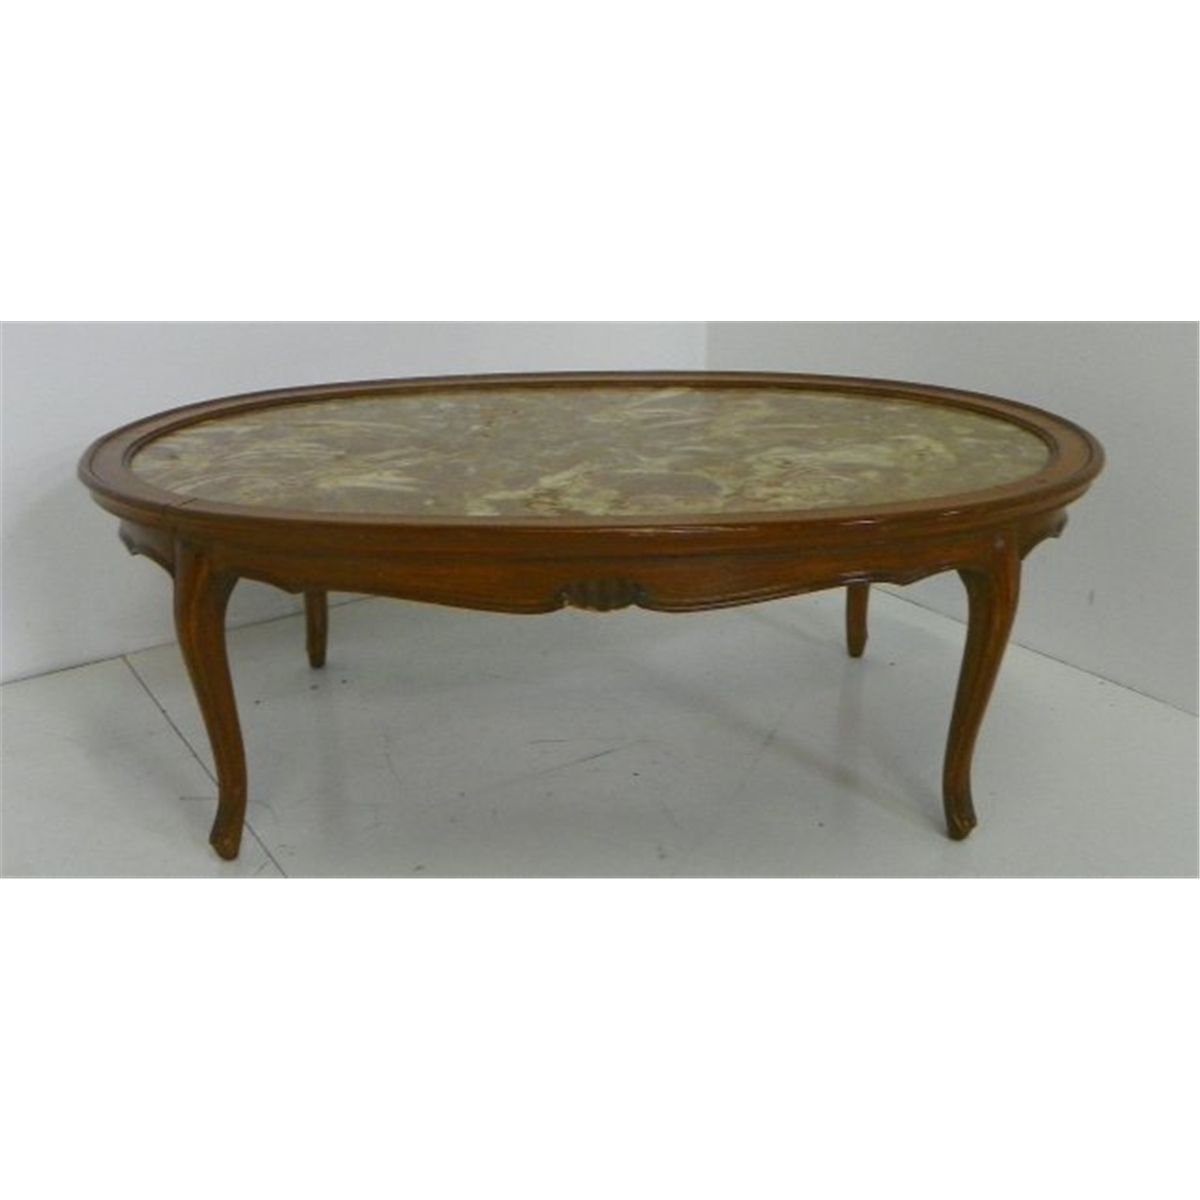 Country French marble top oval coffee table